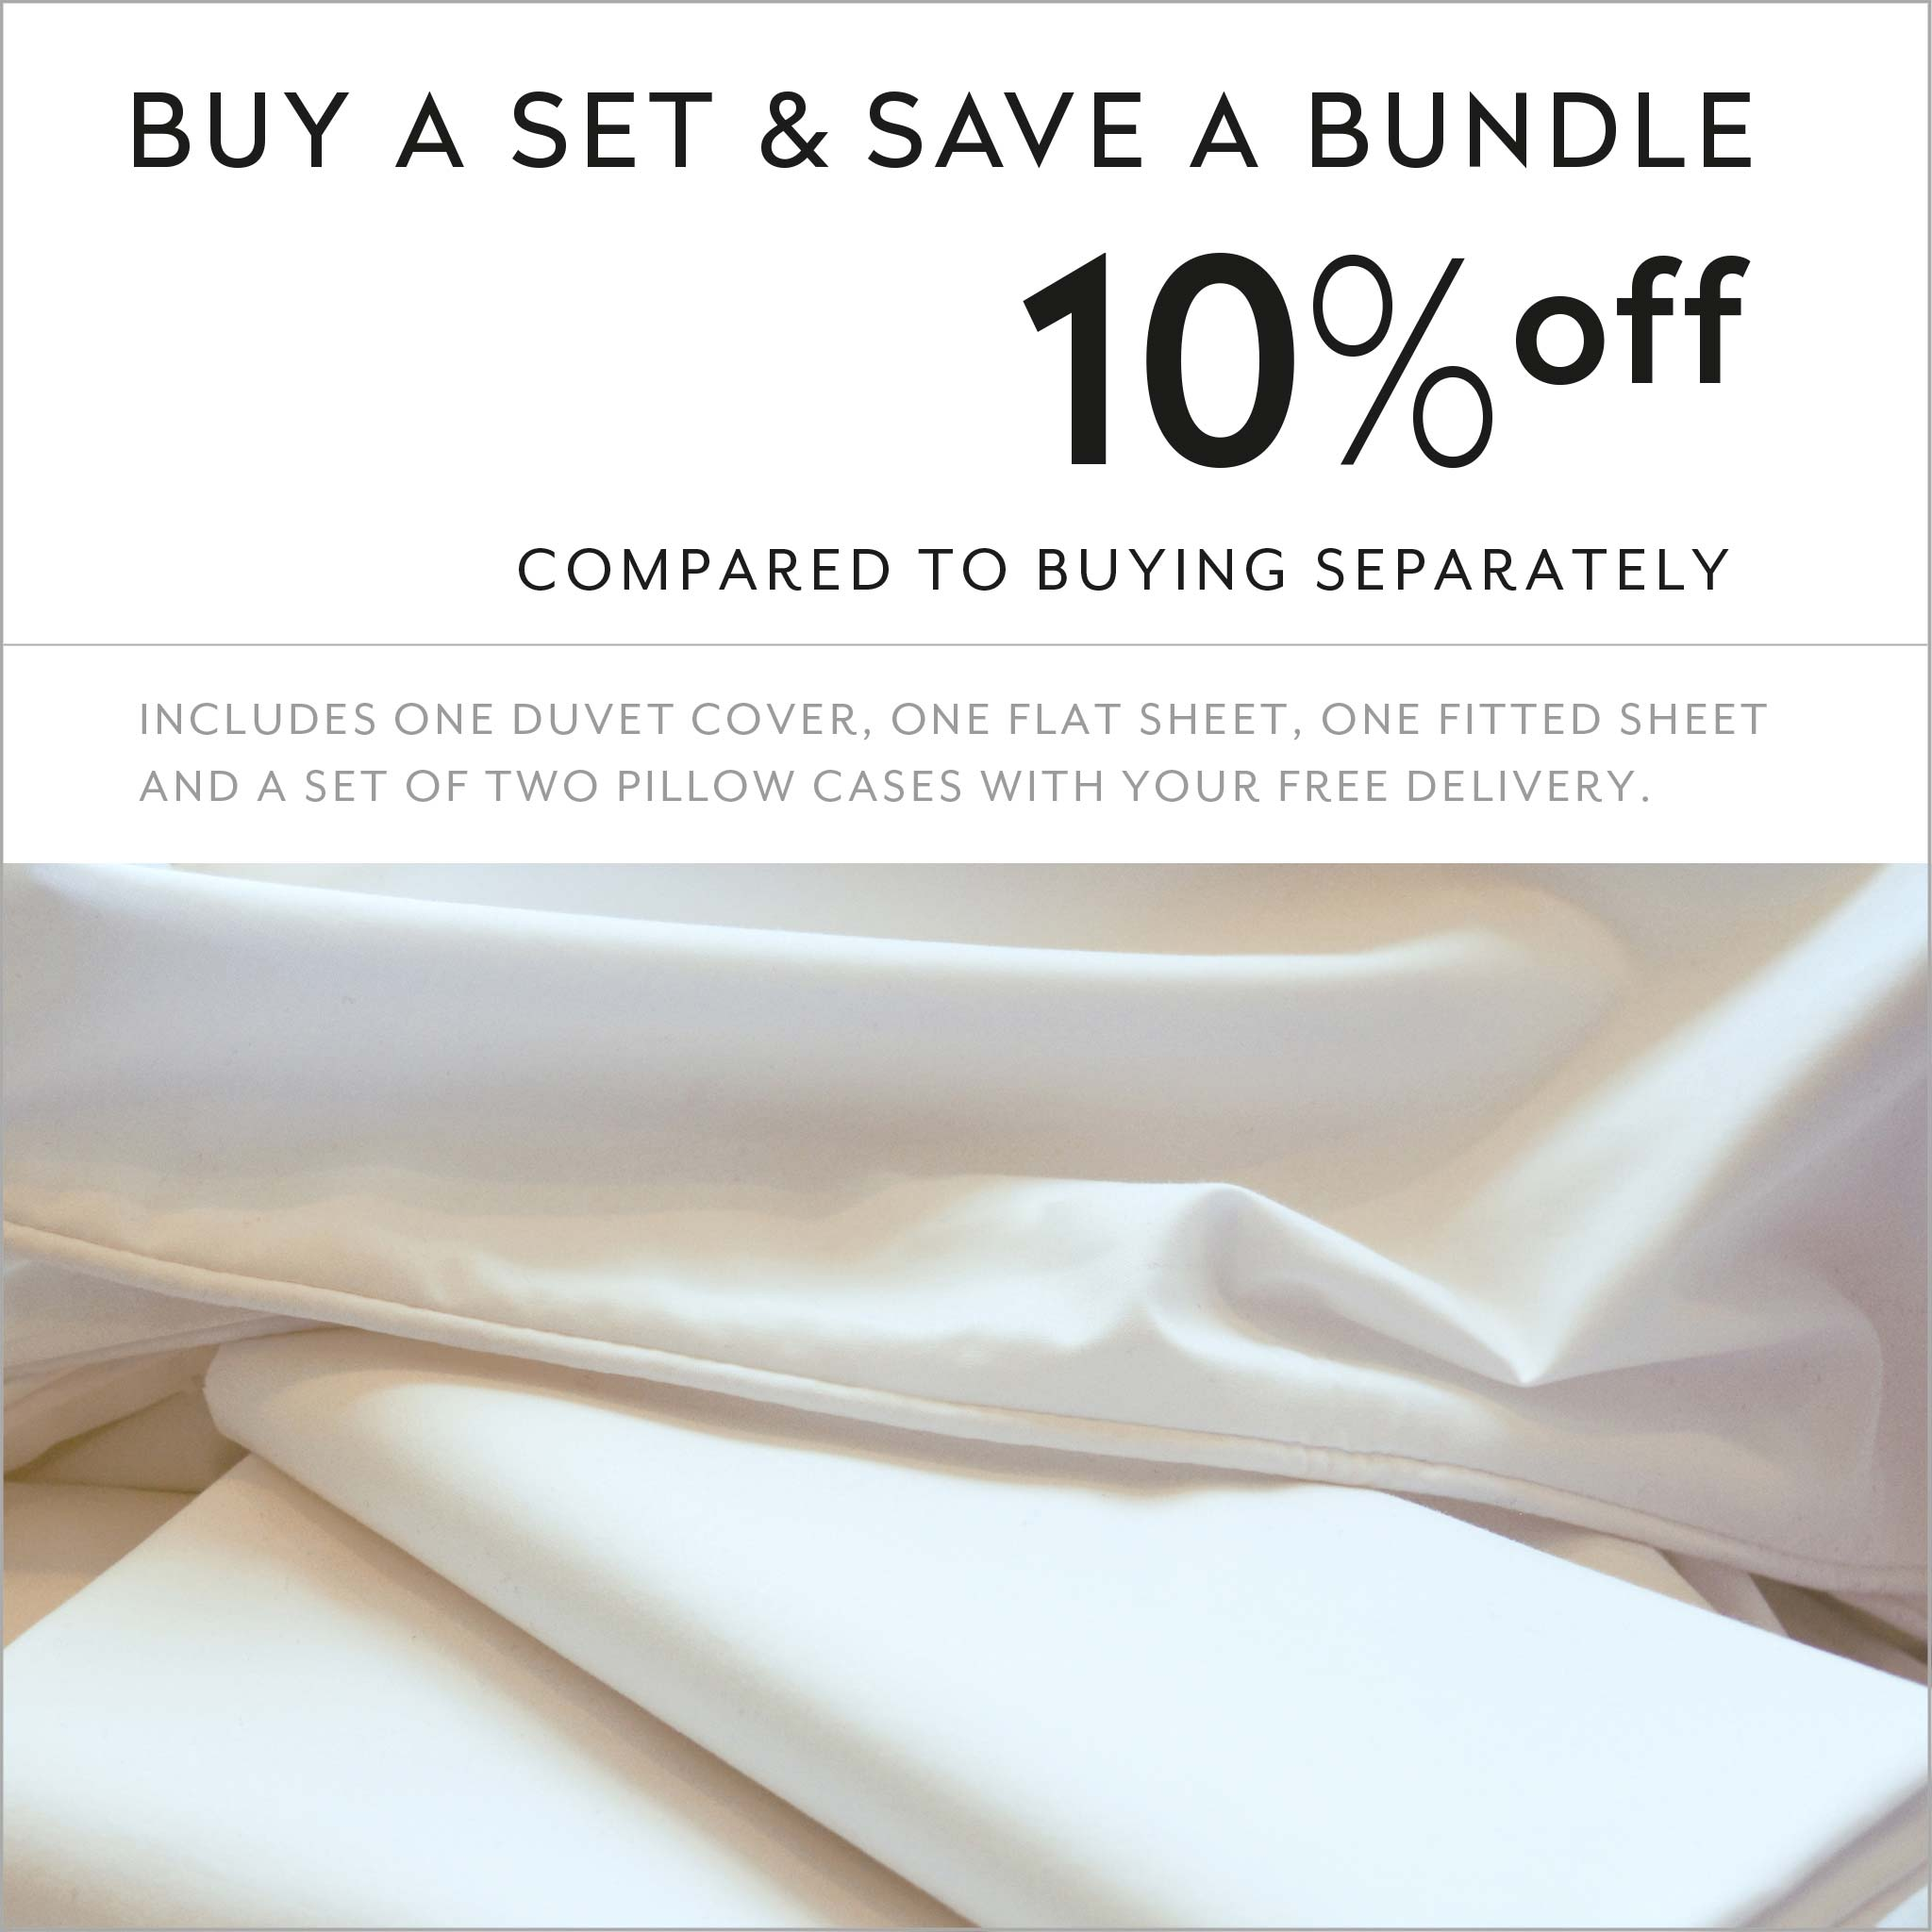 ZayZay luxury linen set save 10 percent Untouched Snow duvet cover sheets pillowcase